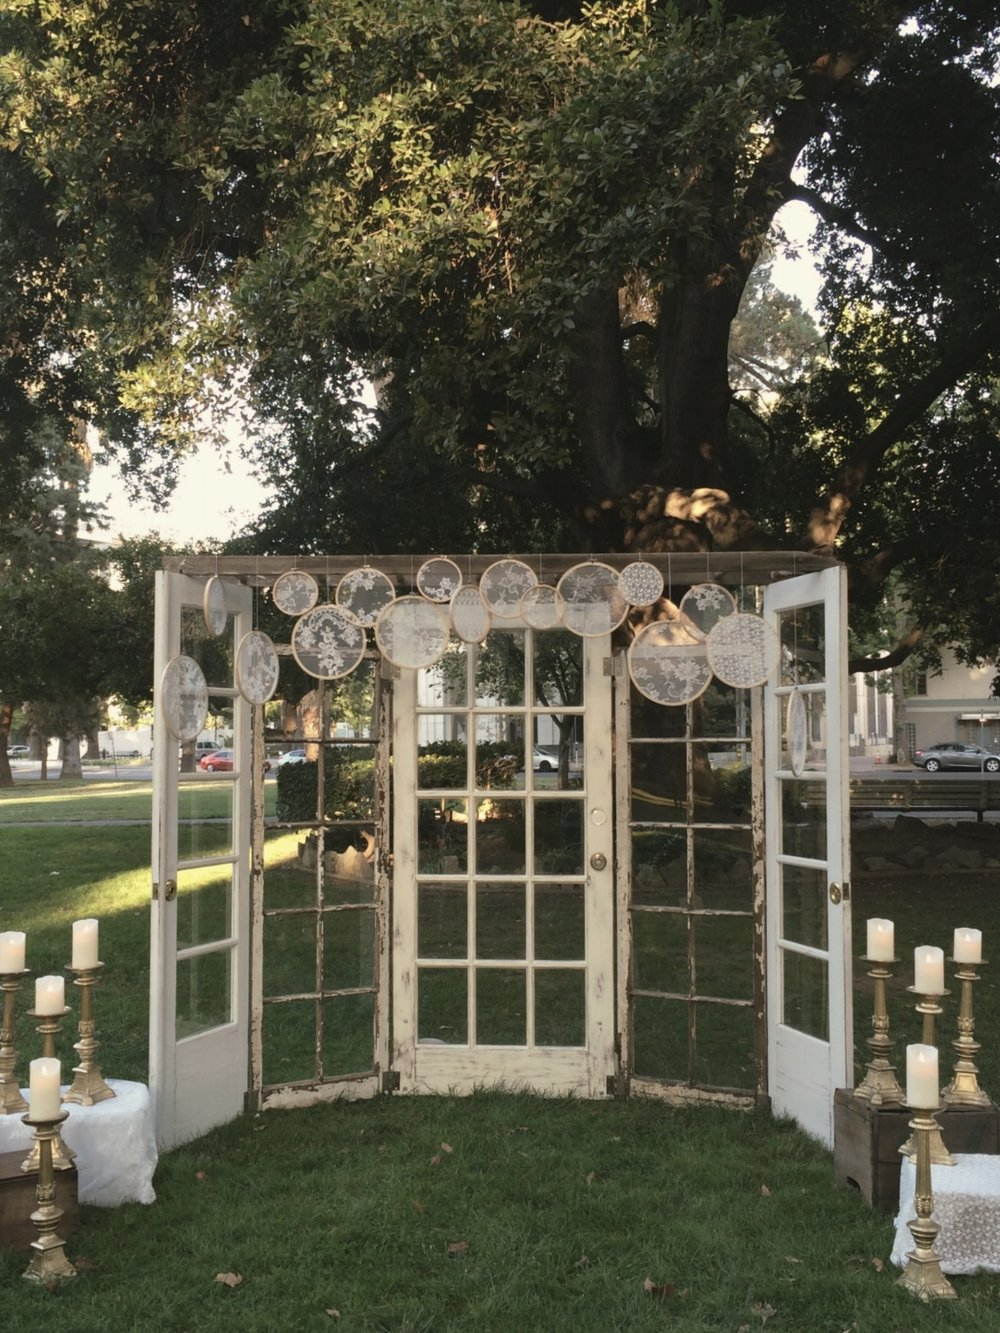 American Vintage Rentals | Wedding Rentals | Furniture Decor Antique Rustic | Northern California | Party Rentals - 5 All Glass Door Altar & American Vintage Rentals | Wedding Rentals | Furniture Decor ... pezcame.com